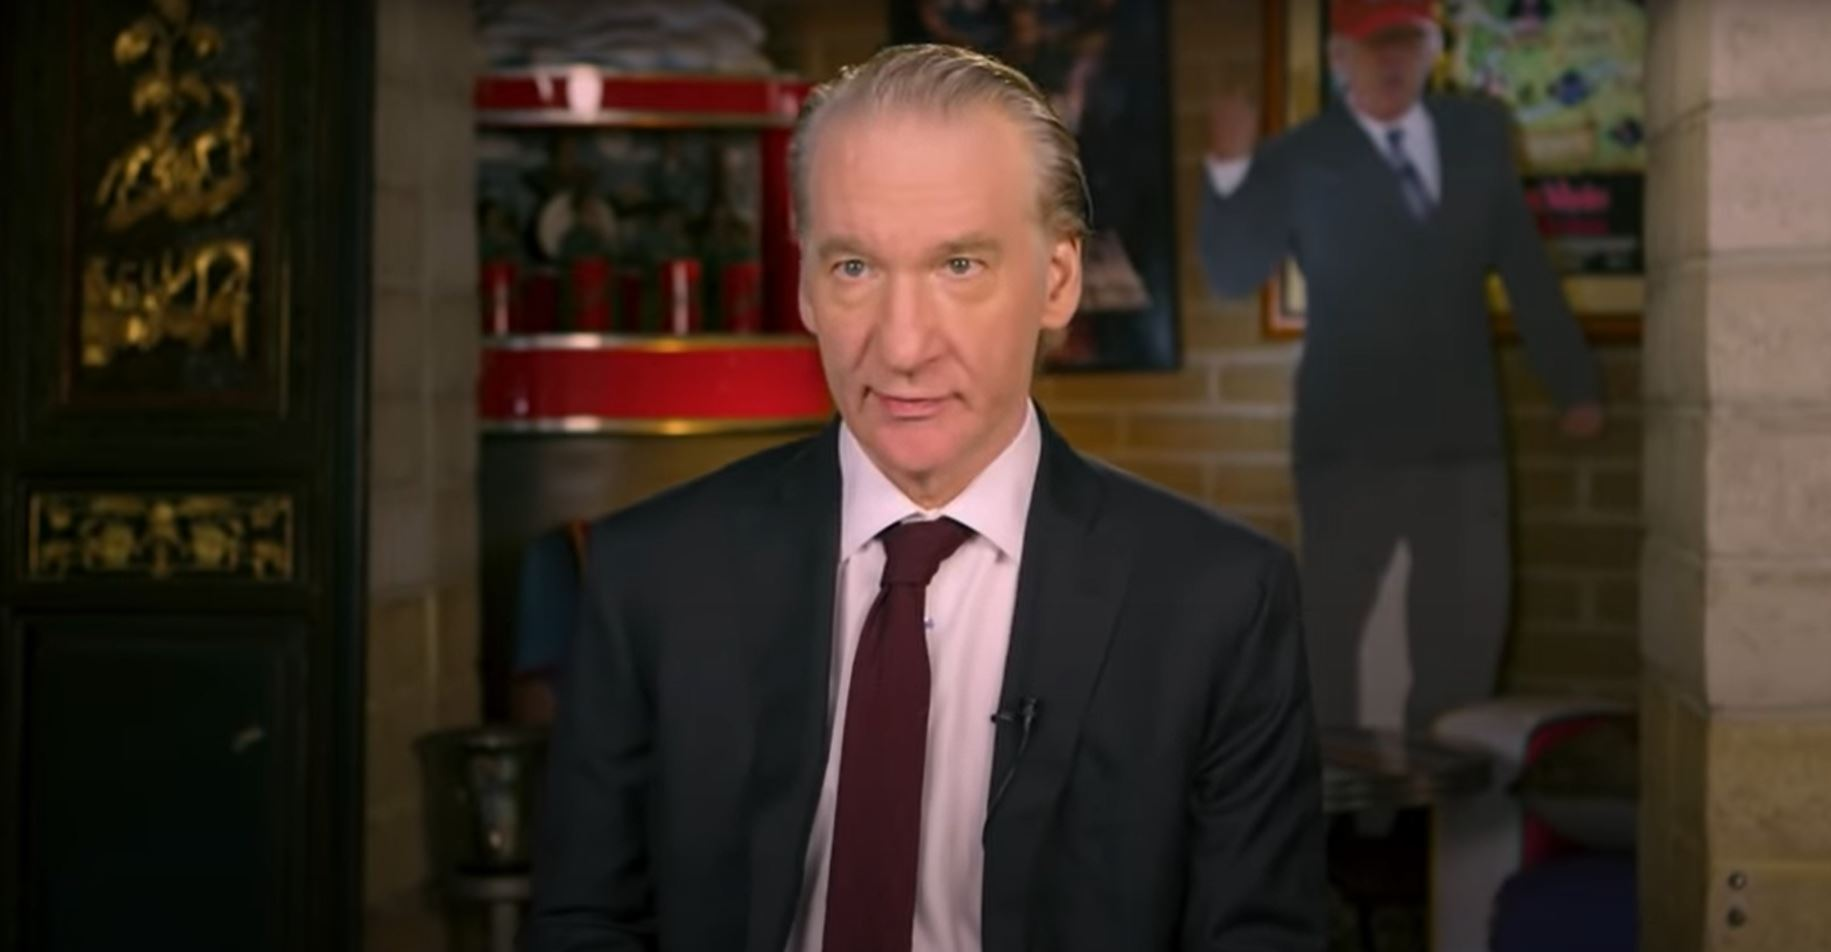 Bill Maher Guest 'George W. Bush Is A War Criminal. He Sent All Of These People To Die' (VIDEO)